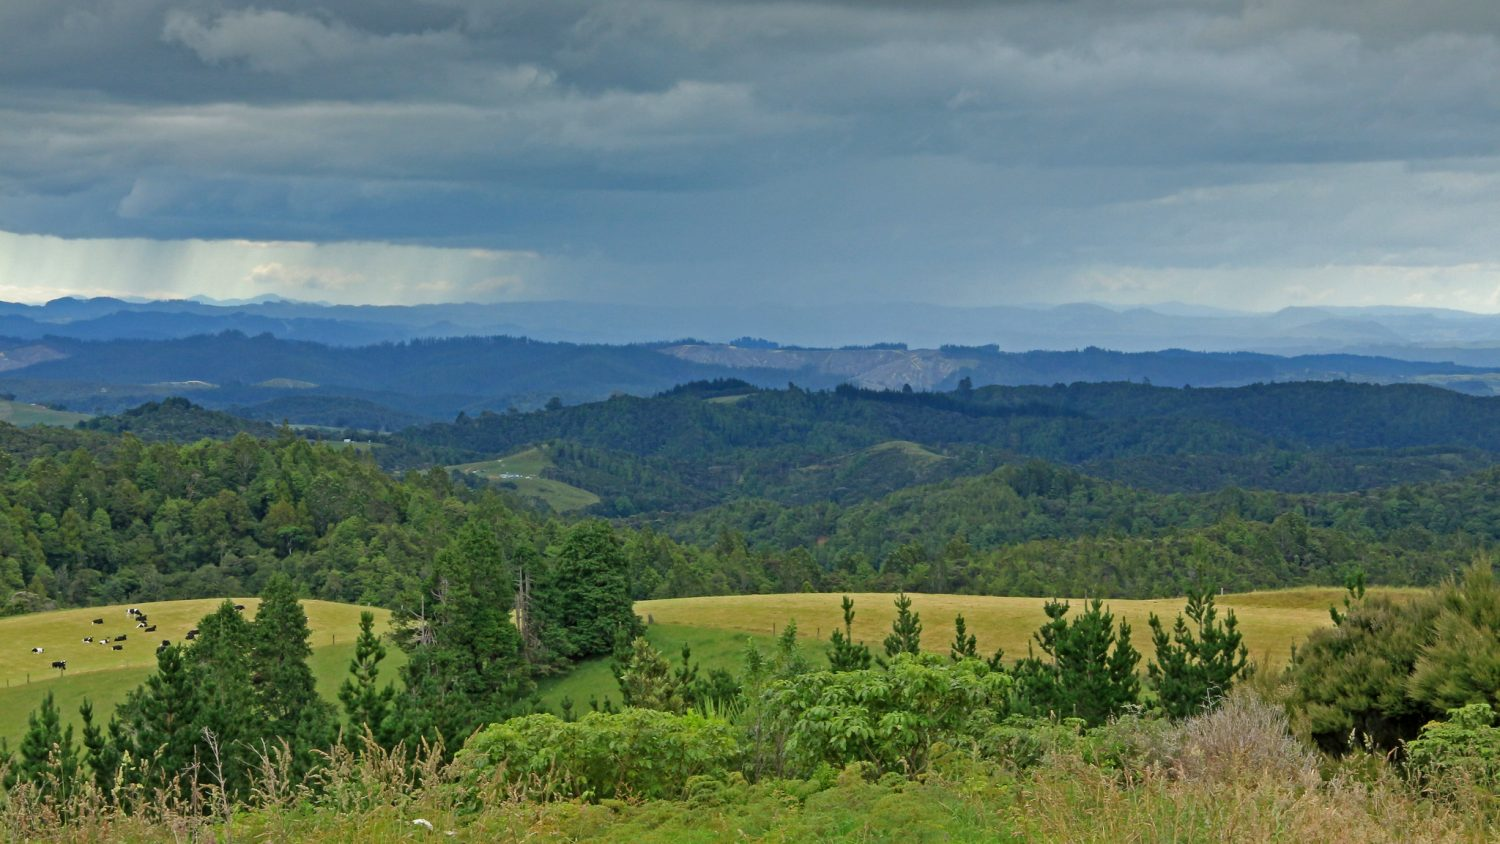 A storm in the distance at the Battlefield Historic Reserve, Far North District, New Zealand